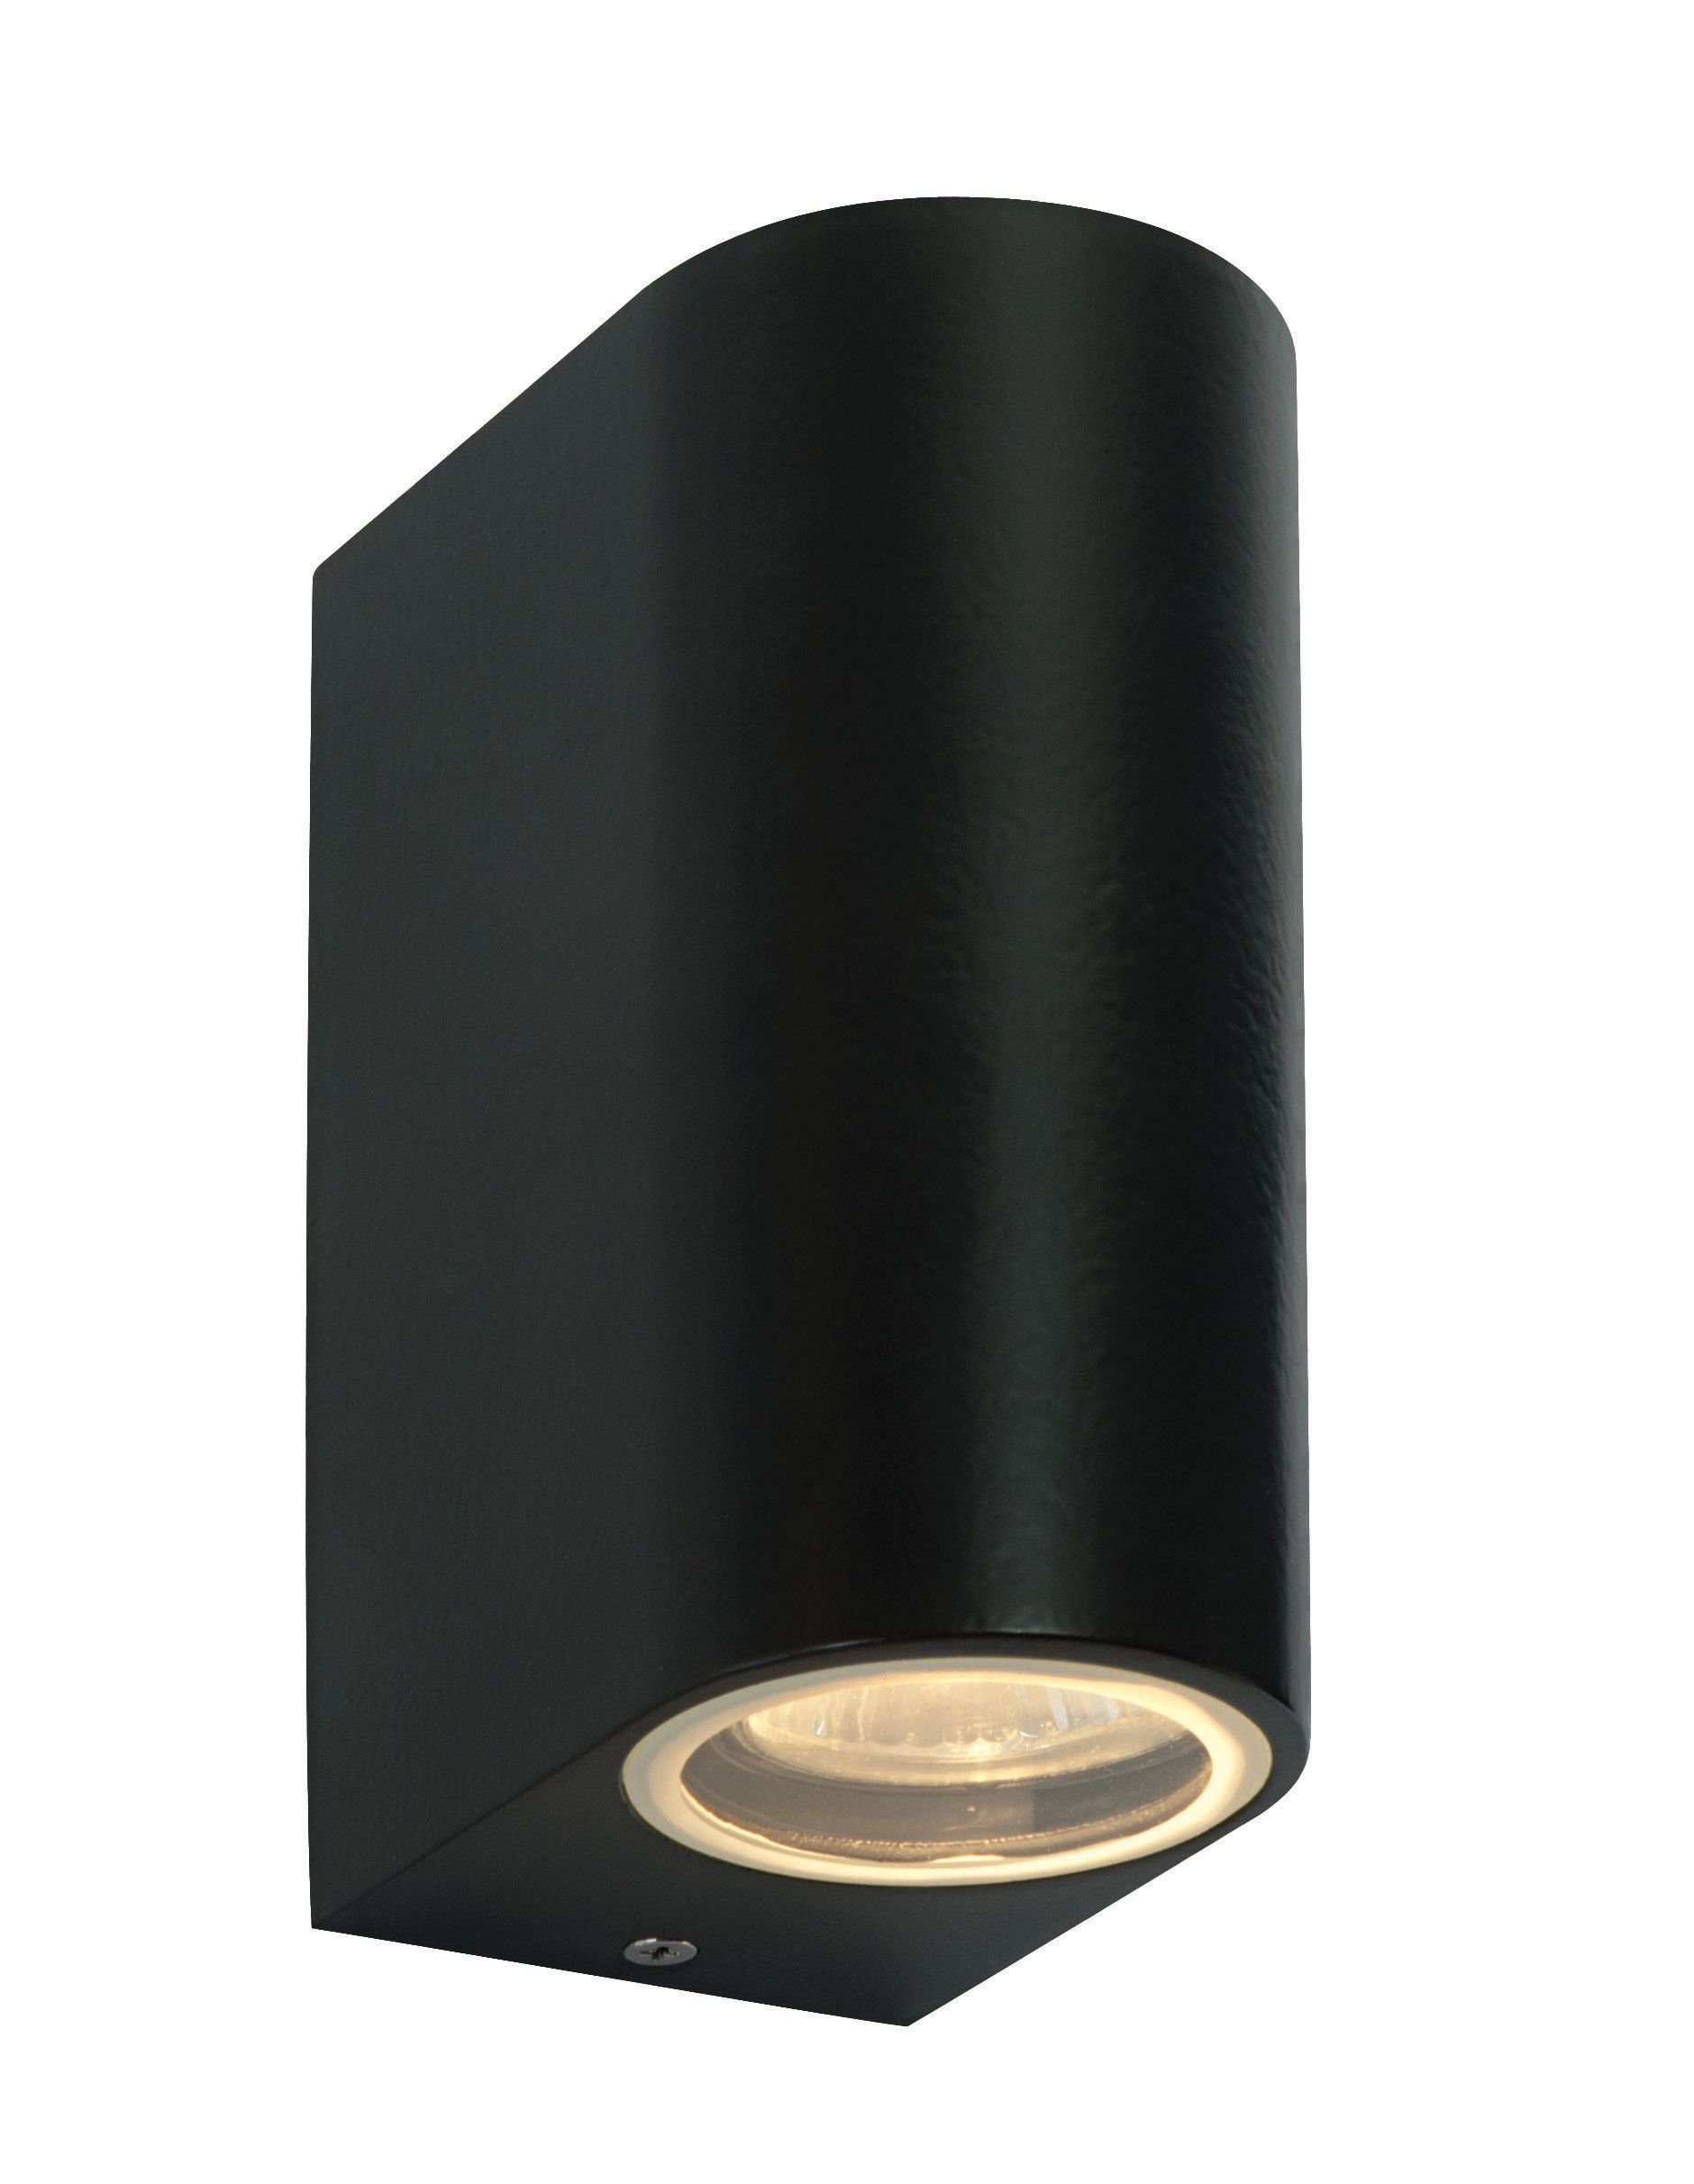 Outside Wall Lights Wickes : Garden Lanterns & Wall Lights Exterior Lights Wickes.co.uk